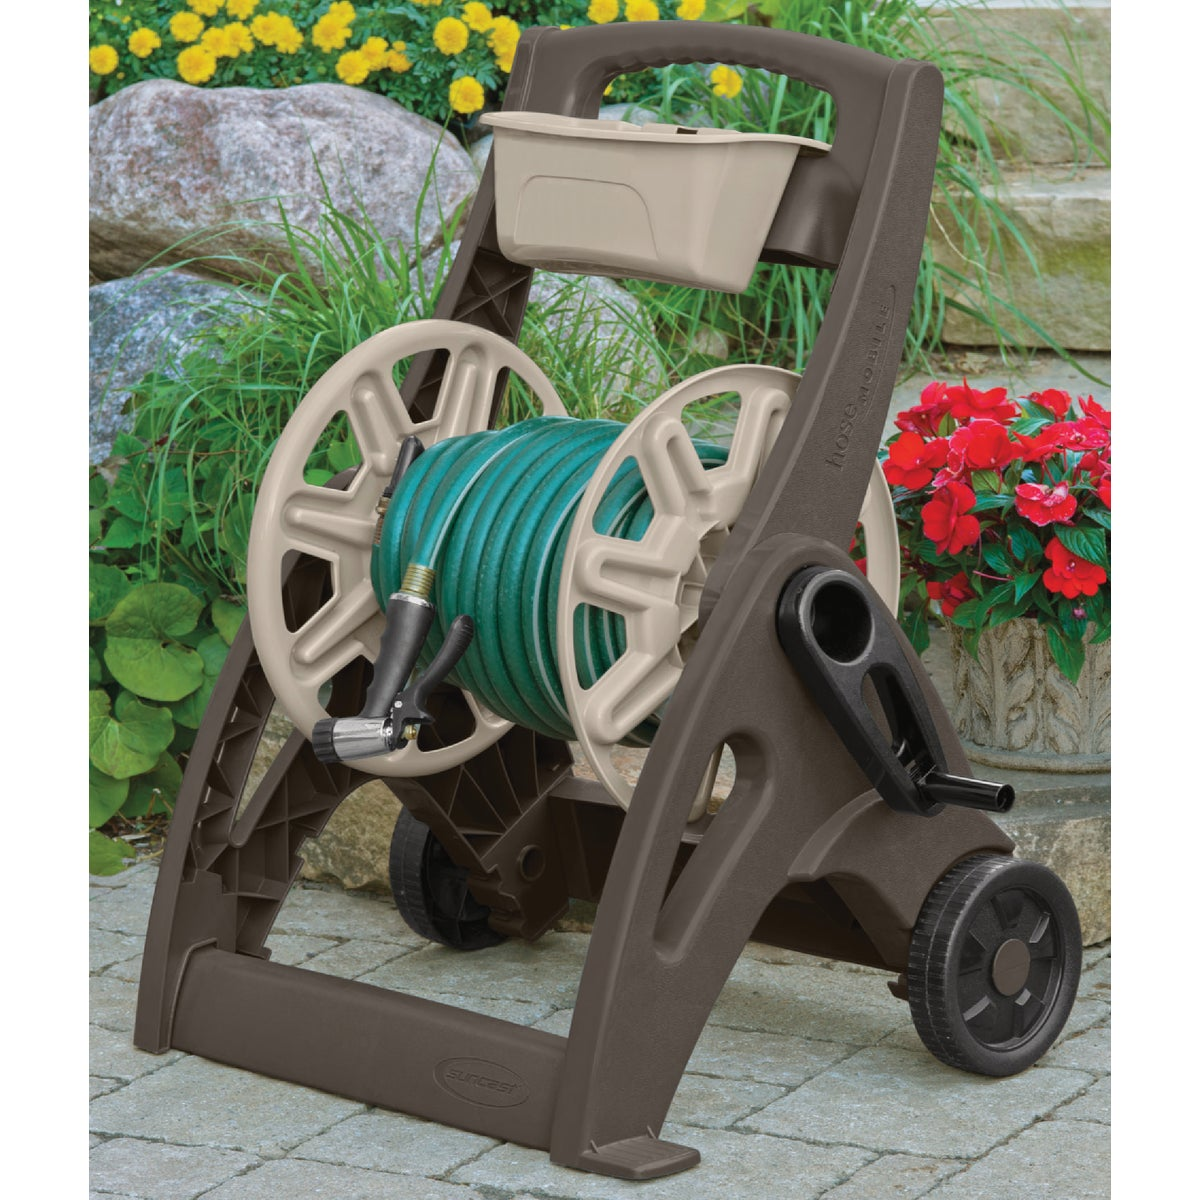 225' HOSE REEL CART - SFB200B by Suncast Corporation